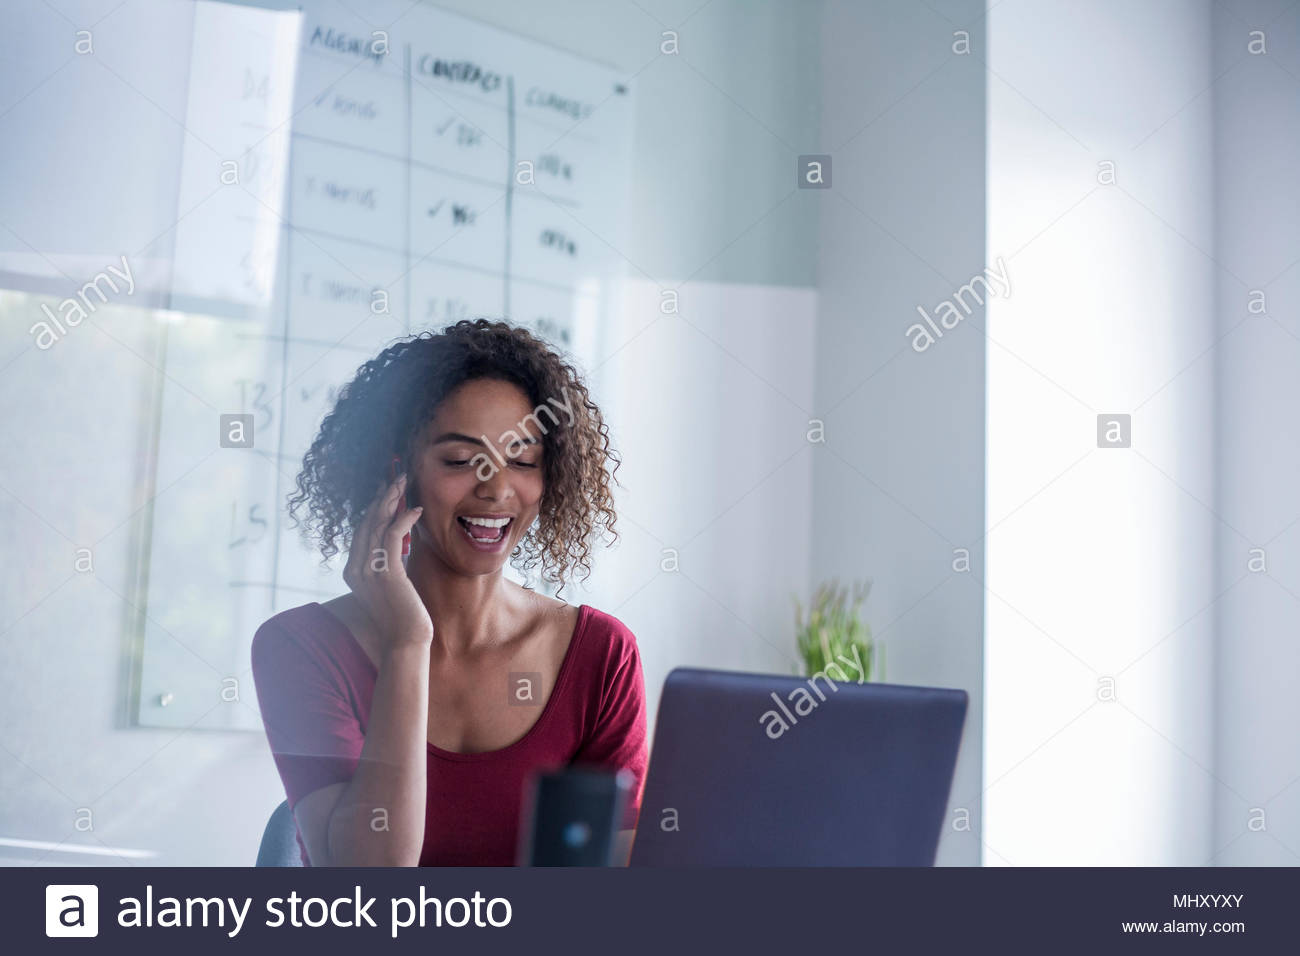 Businesswomen in office making telephone call smiling - Stock Image